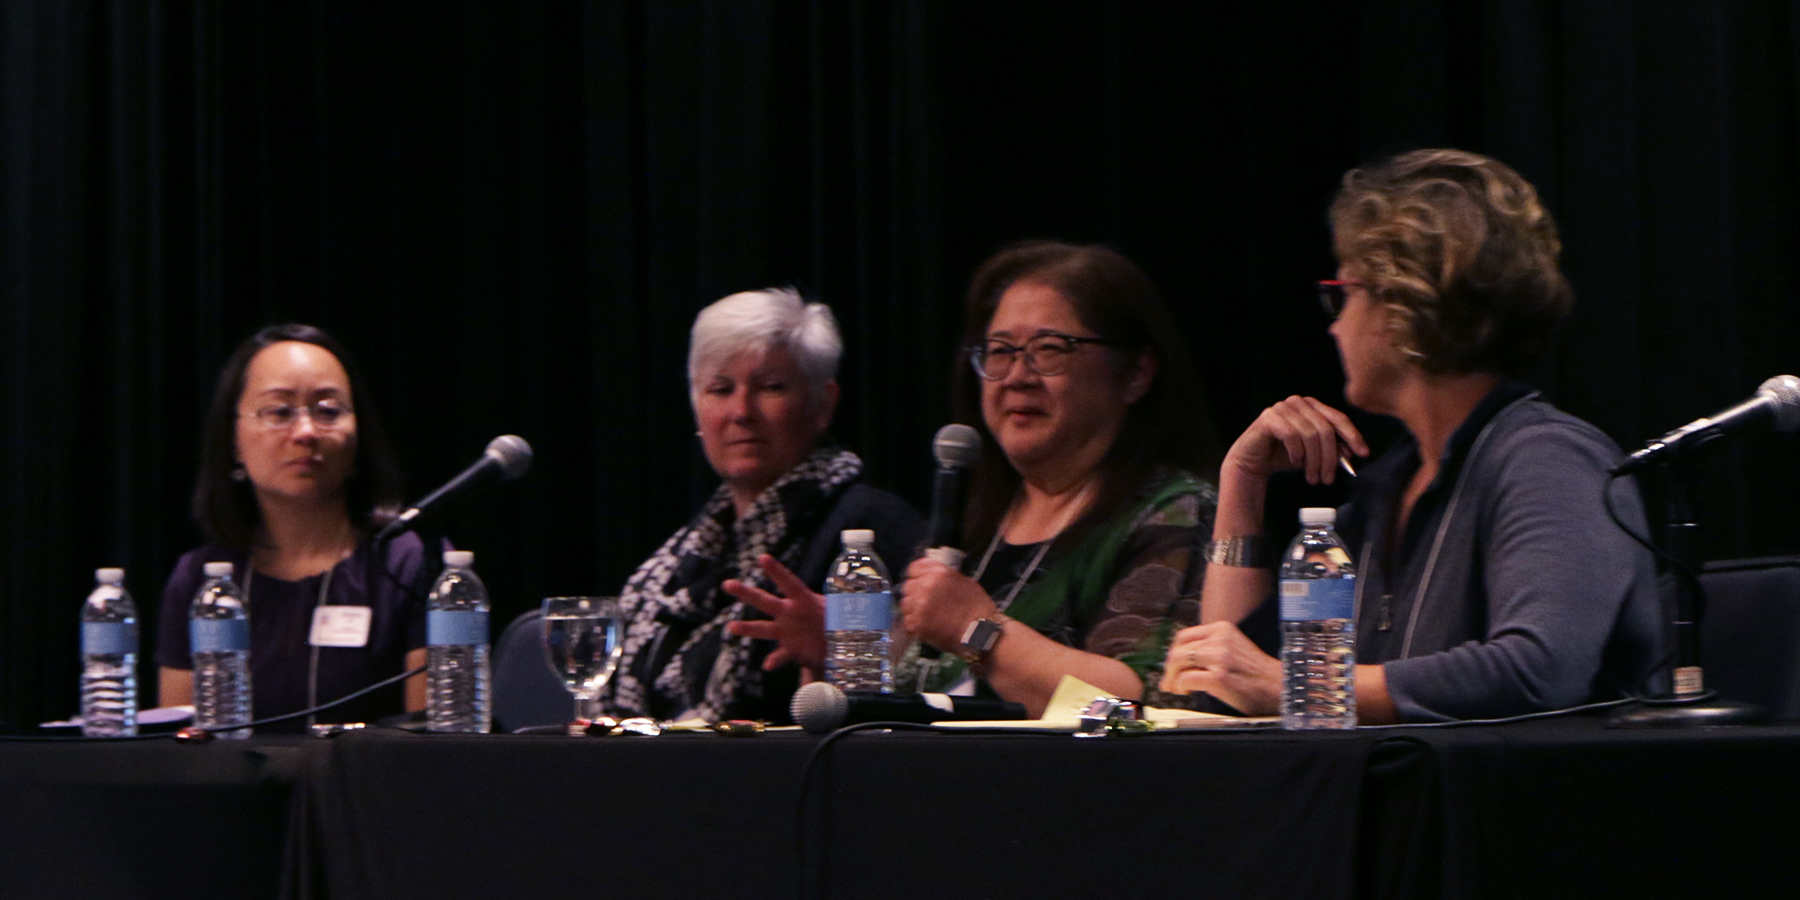 (left to right) Jihyun Oh; Laurie Griffith, associate director, Constitutional Interpretation at OGA; the Reverend Wendy Tajima, executive presbyter of San Gabriel Presbytery; and the Reverend Dr. Mary Westfall, transitional presbyter with the Presbytery of Sacramento, take part in a panel discussion during a Friday afternoon plenary. Photo by Rick Jones.